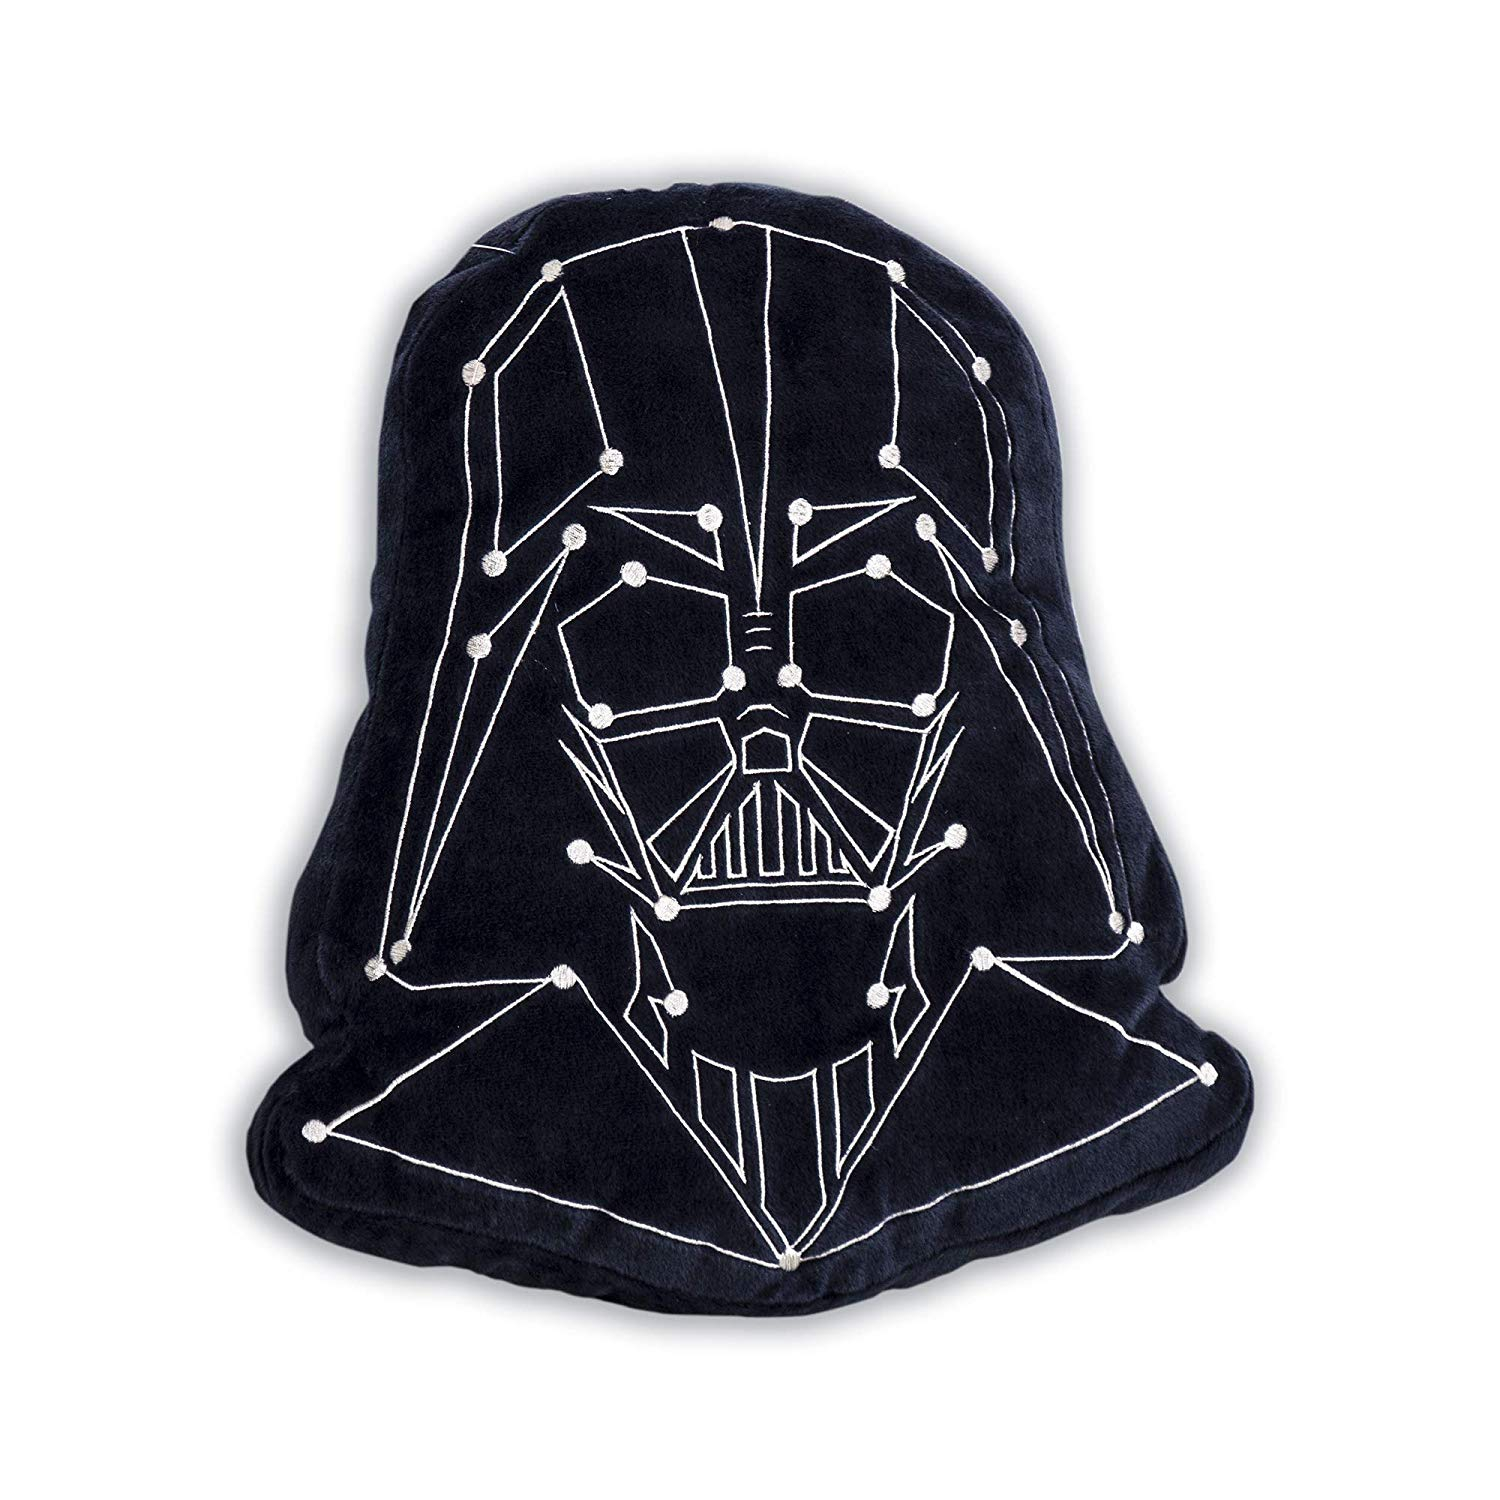 Star Wars Official Darth Vader Design Embroidered Cushion